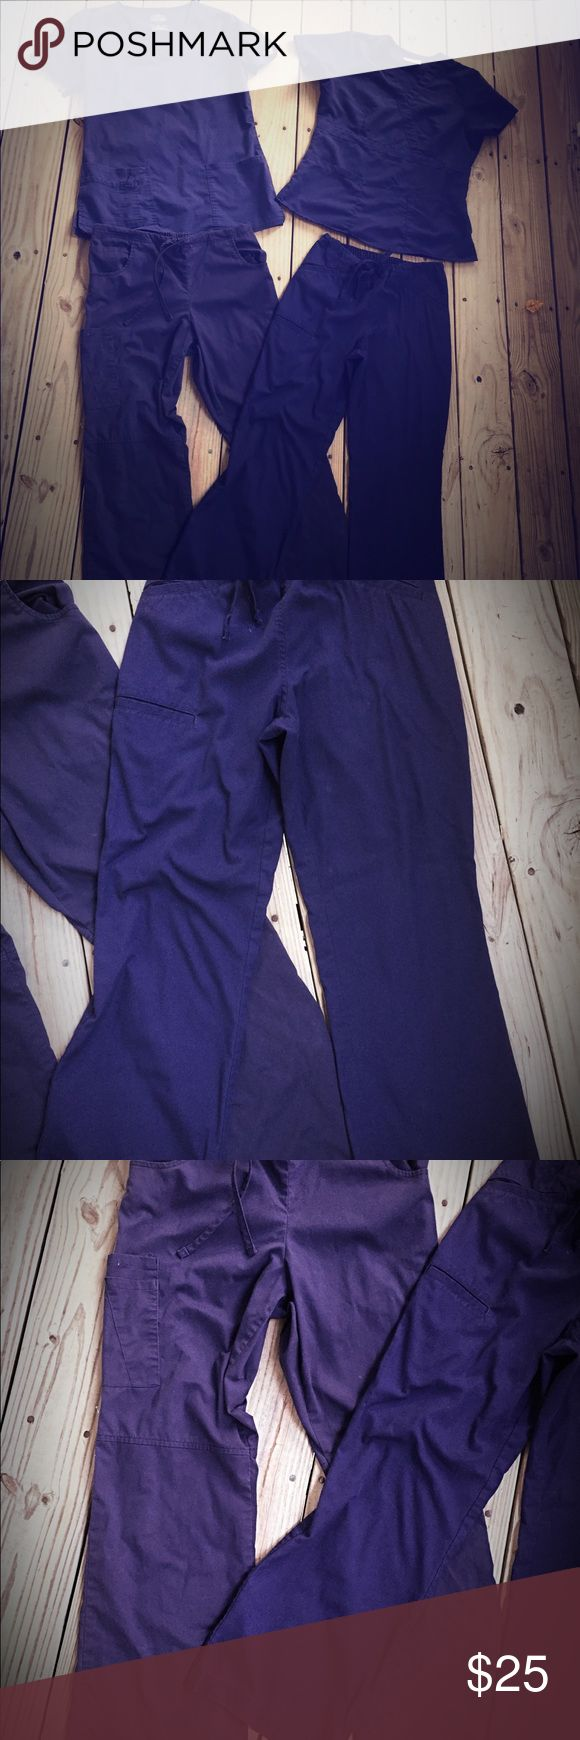 Lot of Navy Blue Scrub Pants & Top + FREE GIFT Scrubs in good Used condition, all are navy blue and a size small (mix lot of brands)  FREE Stethoscope with purchase! Cherokee Pants Straight Leg